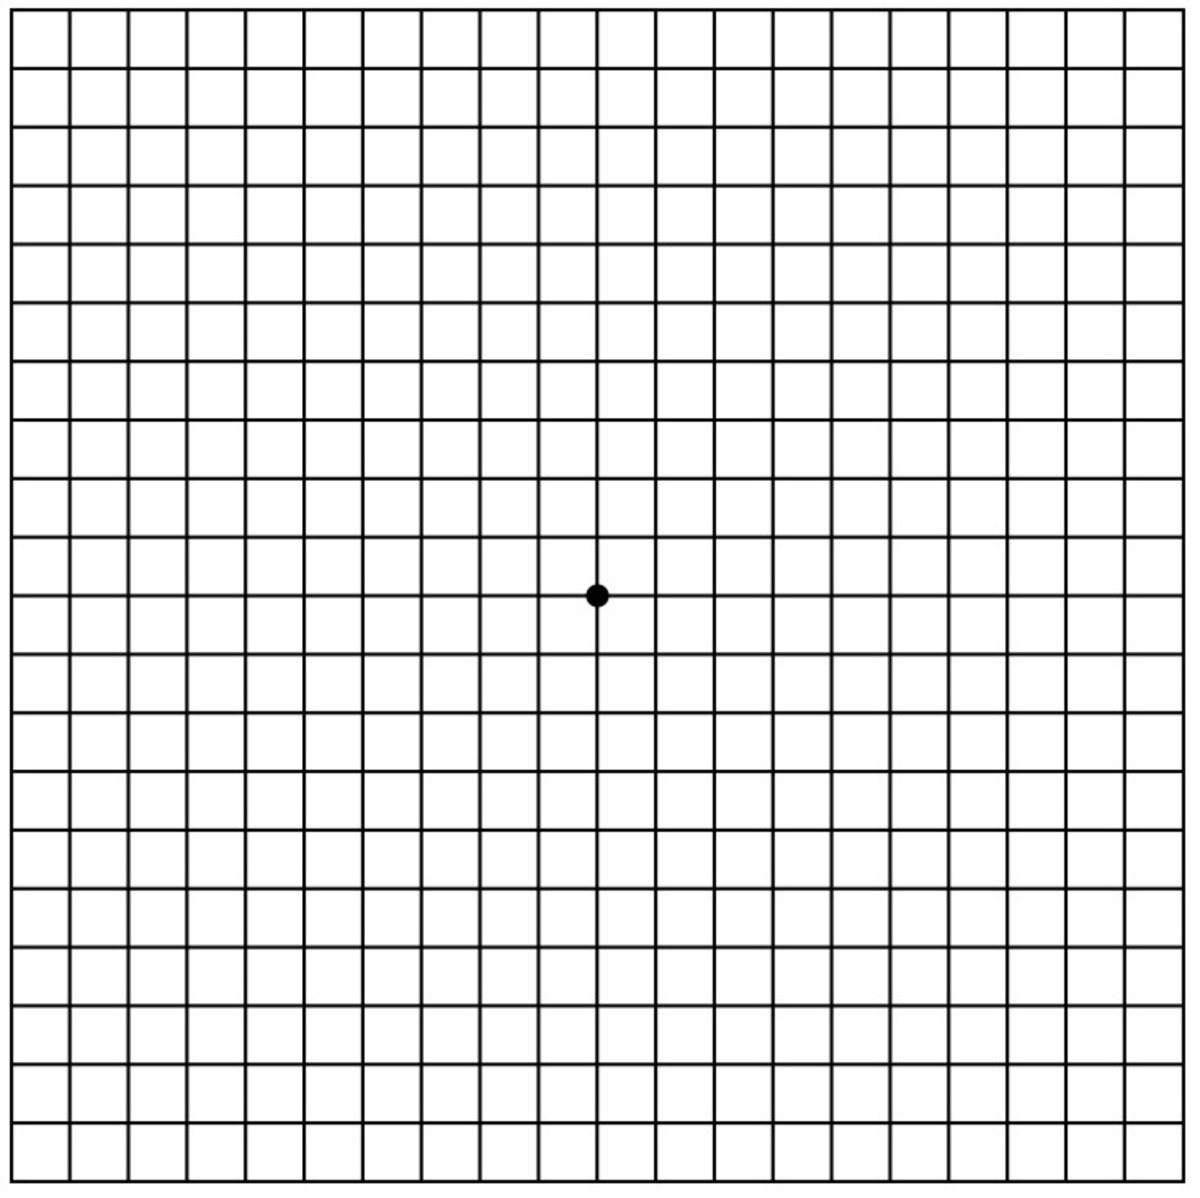 The standard Amsler Grid created by Marc Amsler and used since 1945.